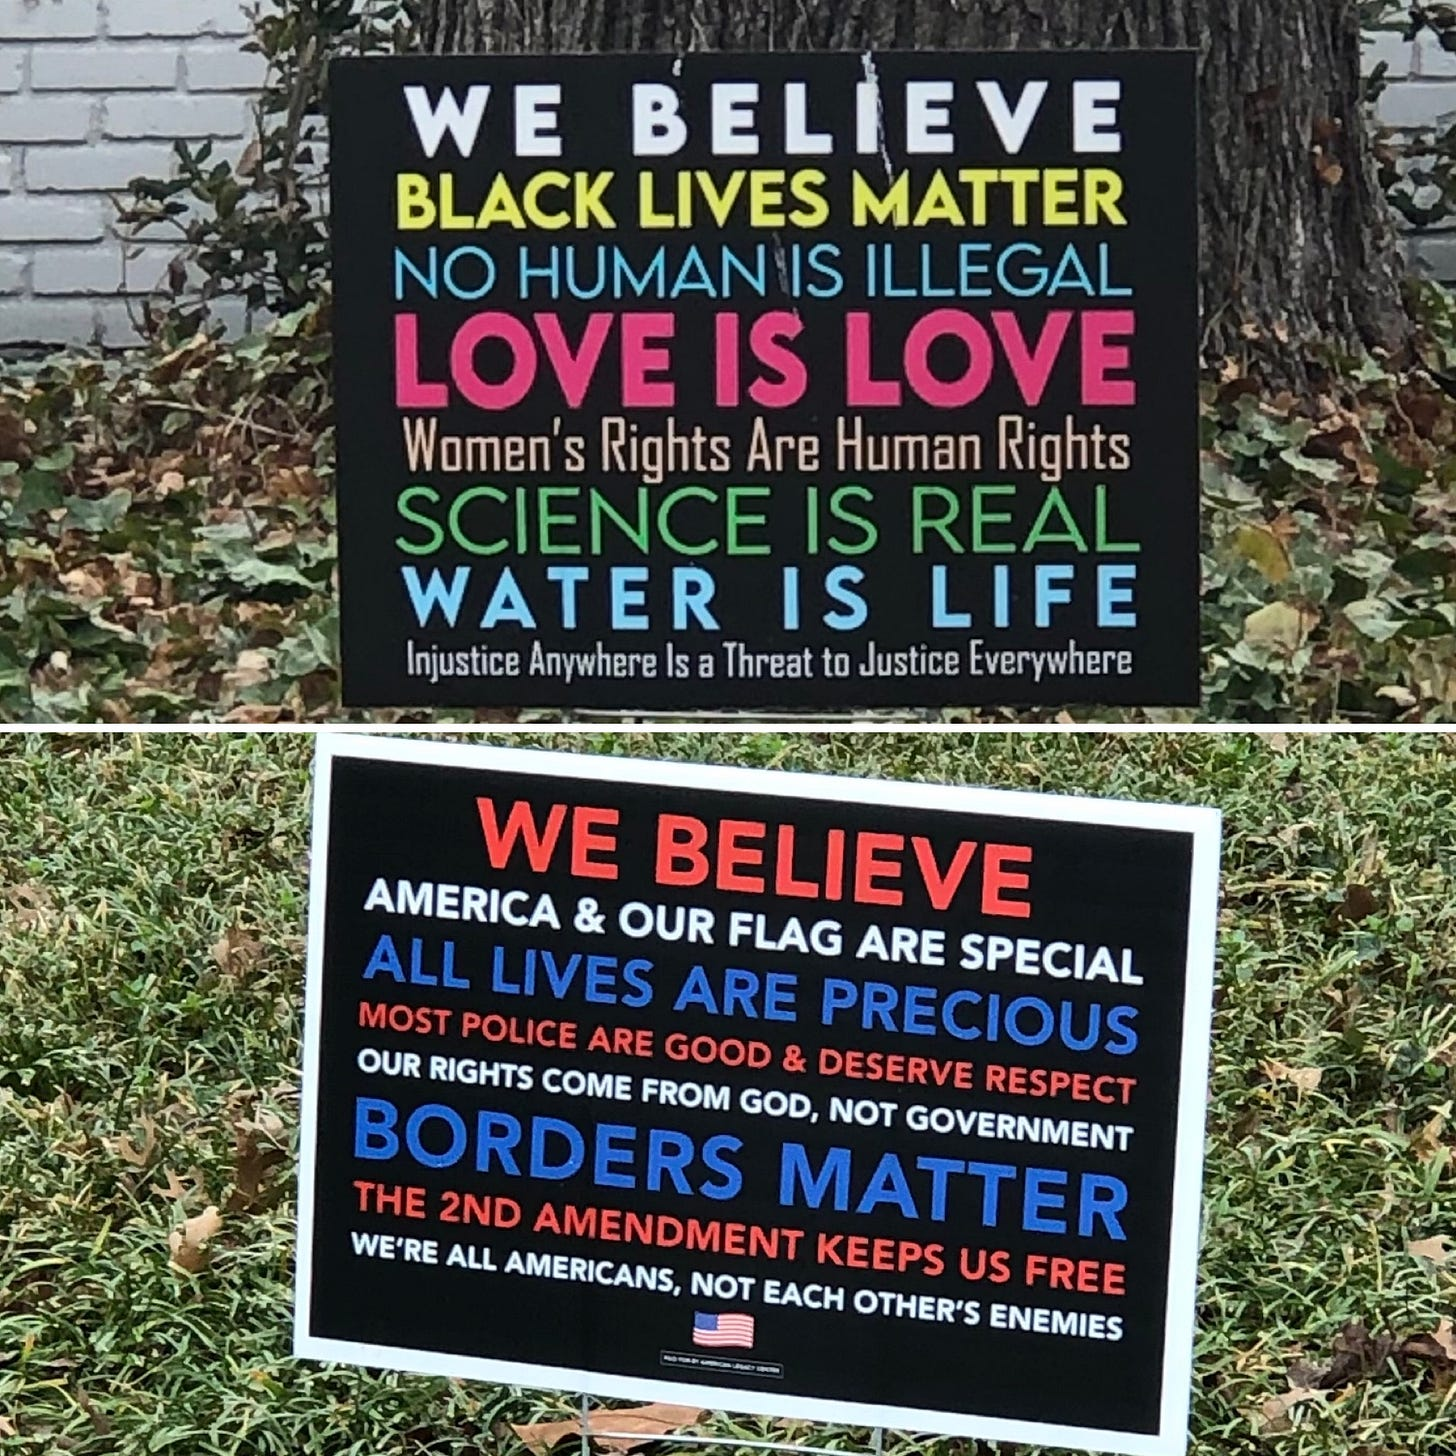 This is a split image with an upper half and a lower half. In the upper half is a yard sign that says WE BELIEVE BLACK LIVES MATTER, NO HUMAN IS ILLEGAL, LOVE IS LOVE, WOMEN'S RIGHTS ARE HUMAN RIGHTS, SCIENCE IS REAL, WATER IS LIFE, INJUSTICE ANYWHERE IS A THREAT TO JUSTICE EVERYWHERE. In the lower half is a yard sign that says WE BELIEVE AMERICA & OUR FLAG ARE SPECIAL, ALL LIVES ARE PRECIOUS, MOST POLICE ARE GOOD & DESERVE RESPECT, OUR RIGHTS COME FROM GOD, NOT GOVERNMENT, BORDERS MATTER, THE 2ND AMENDMENT KEEPS US FREE, WE'RE ALL AMERICANS, NOT EACH OTHER'S ENEMIES